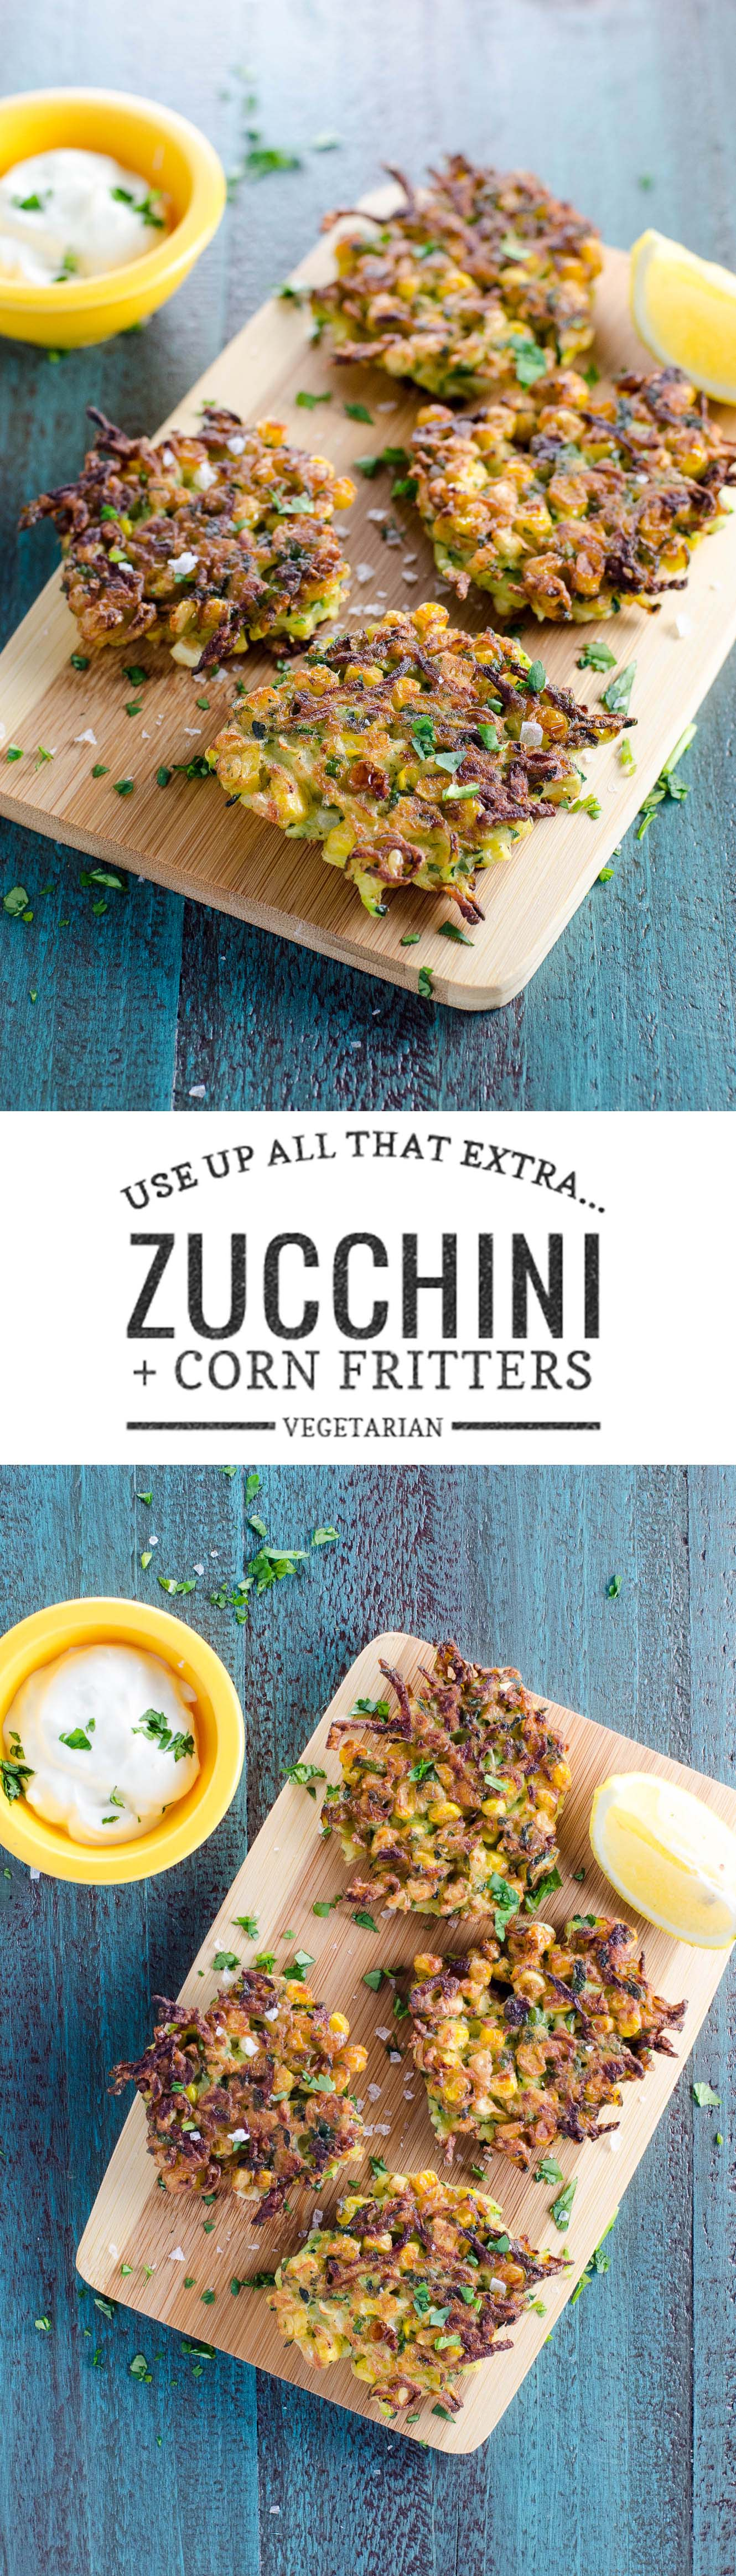 Zucchini corn fritters are a crowd-pleasing way to use up lots of zucchini and corn. Great as a meal or an appetizer.